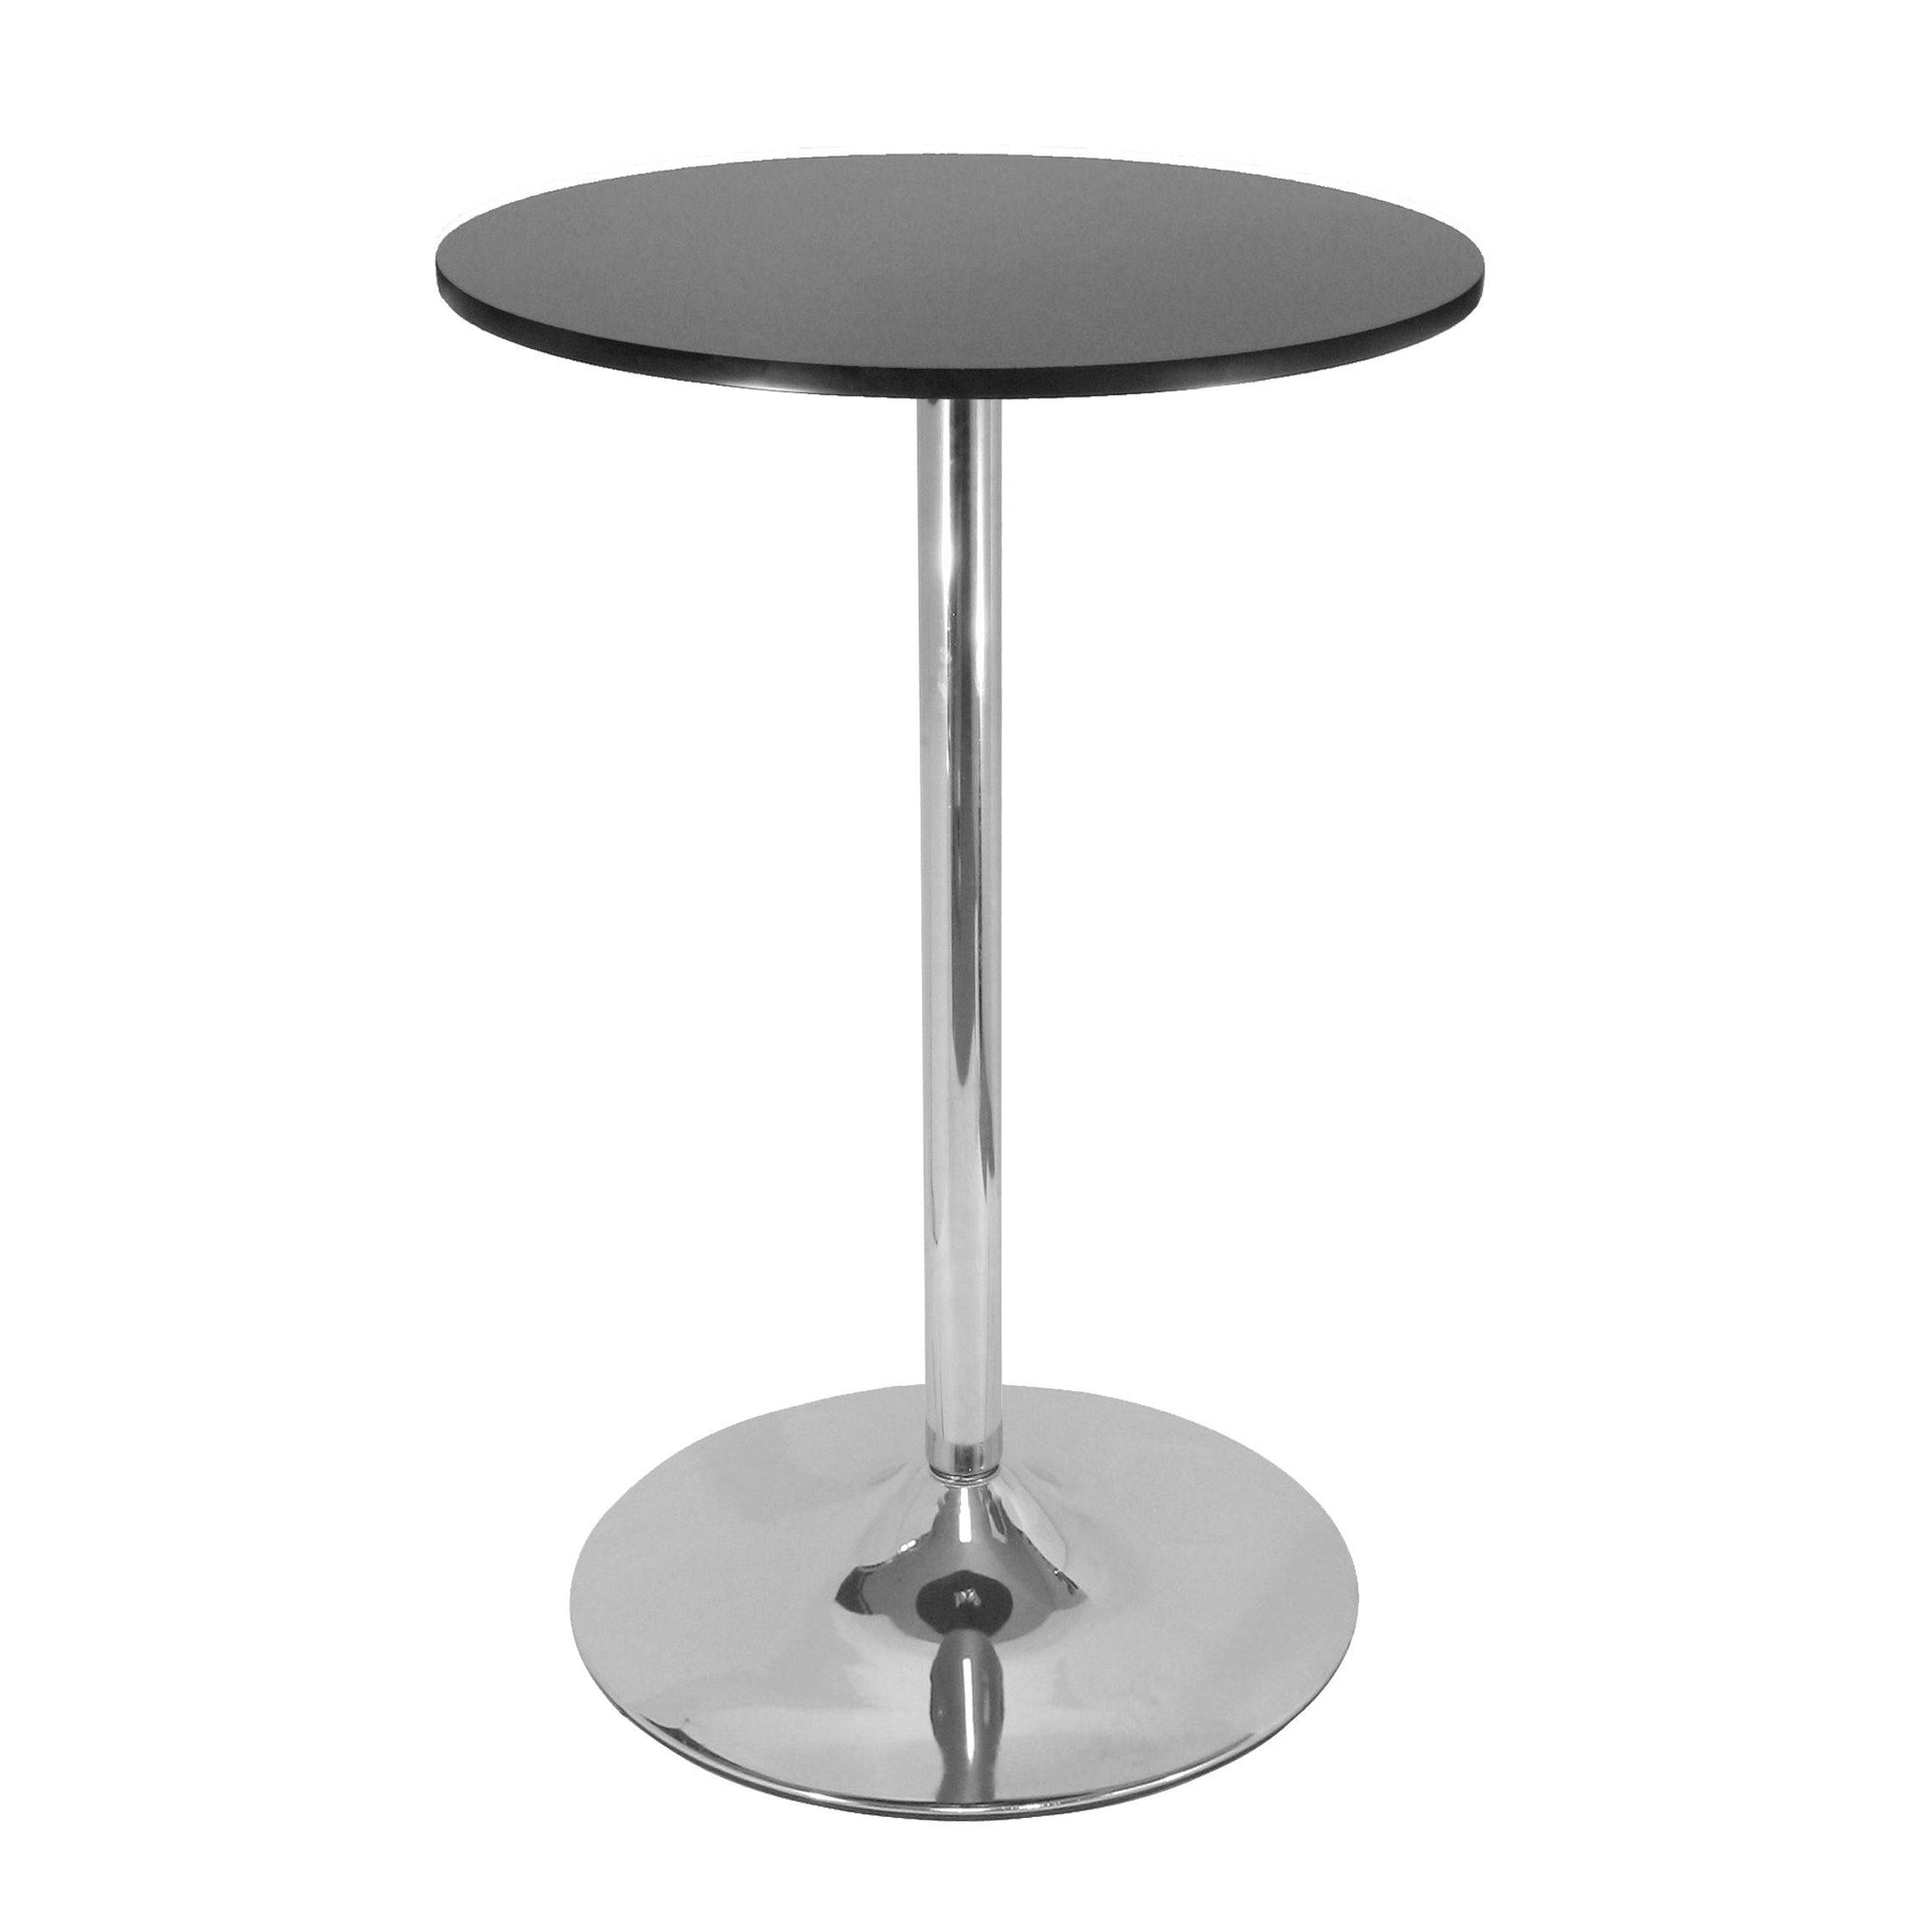 "Spectrum 28"" Round Pub Table, Black & Chrome"